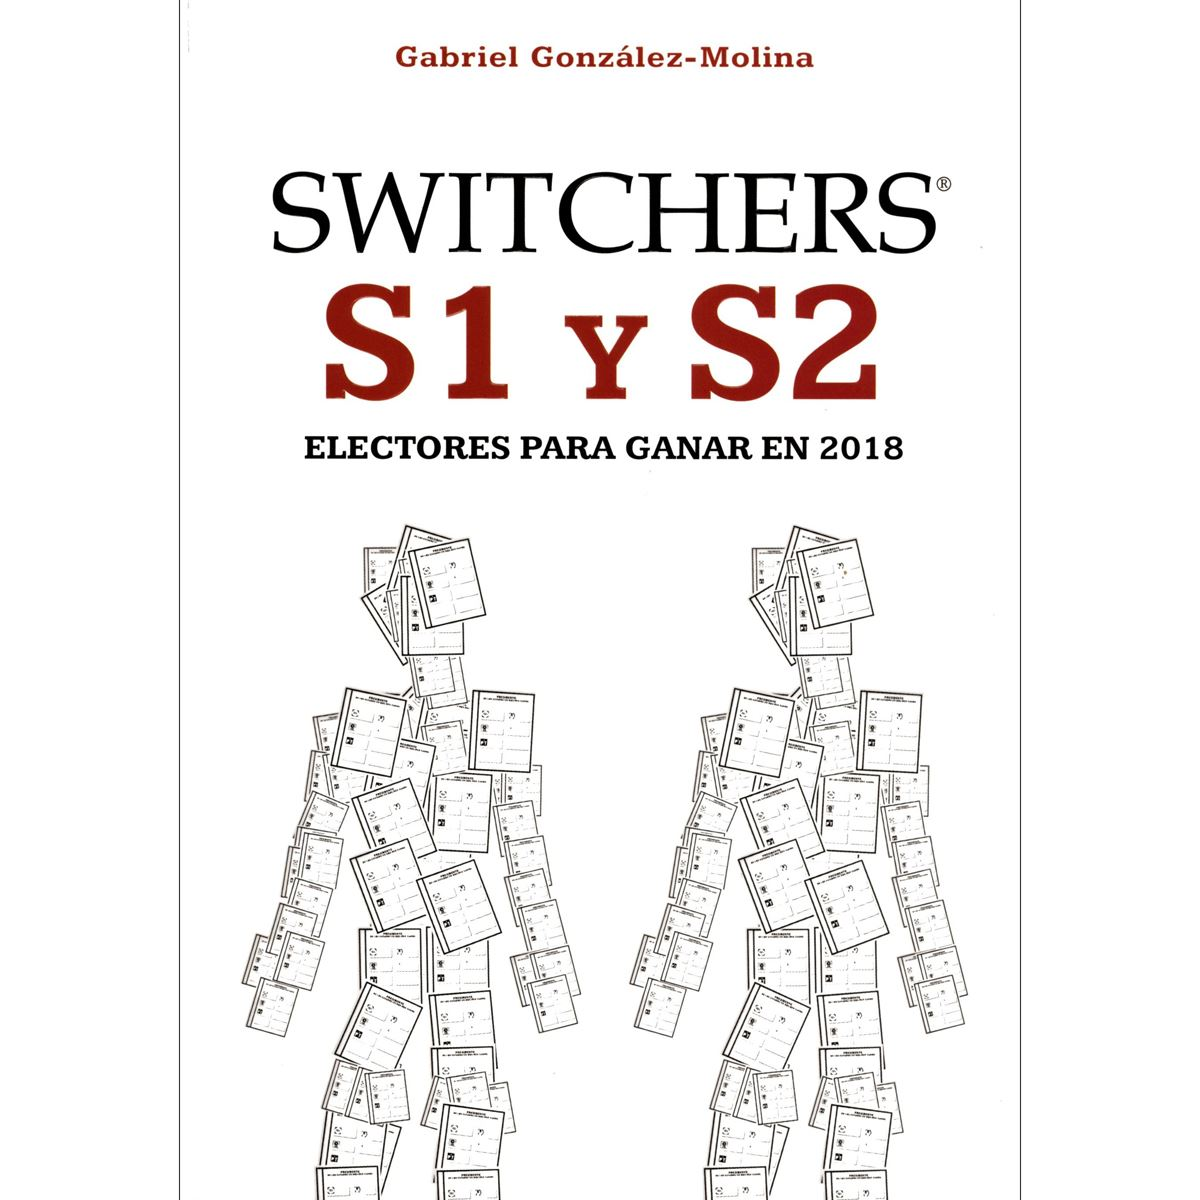 SWITCHERS S1 y S2. Electores para ganar en 2018